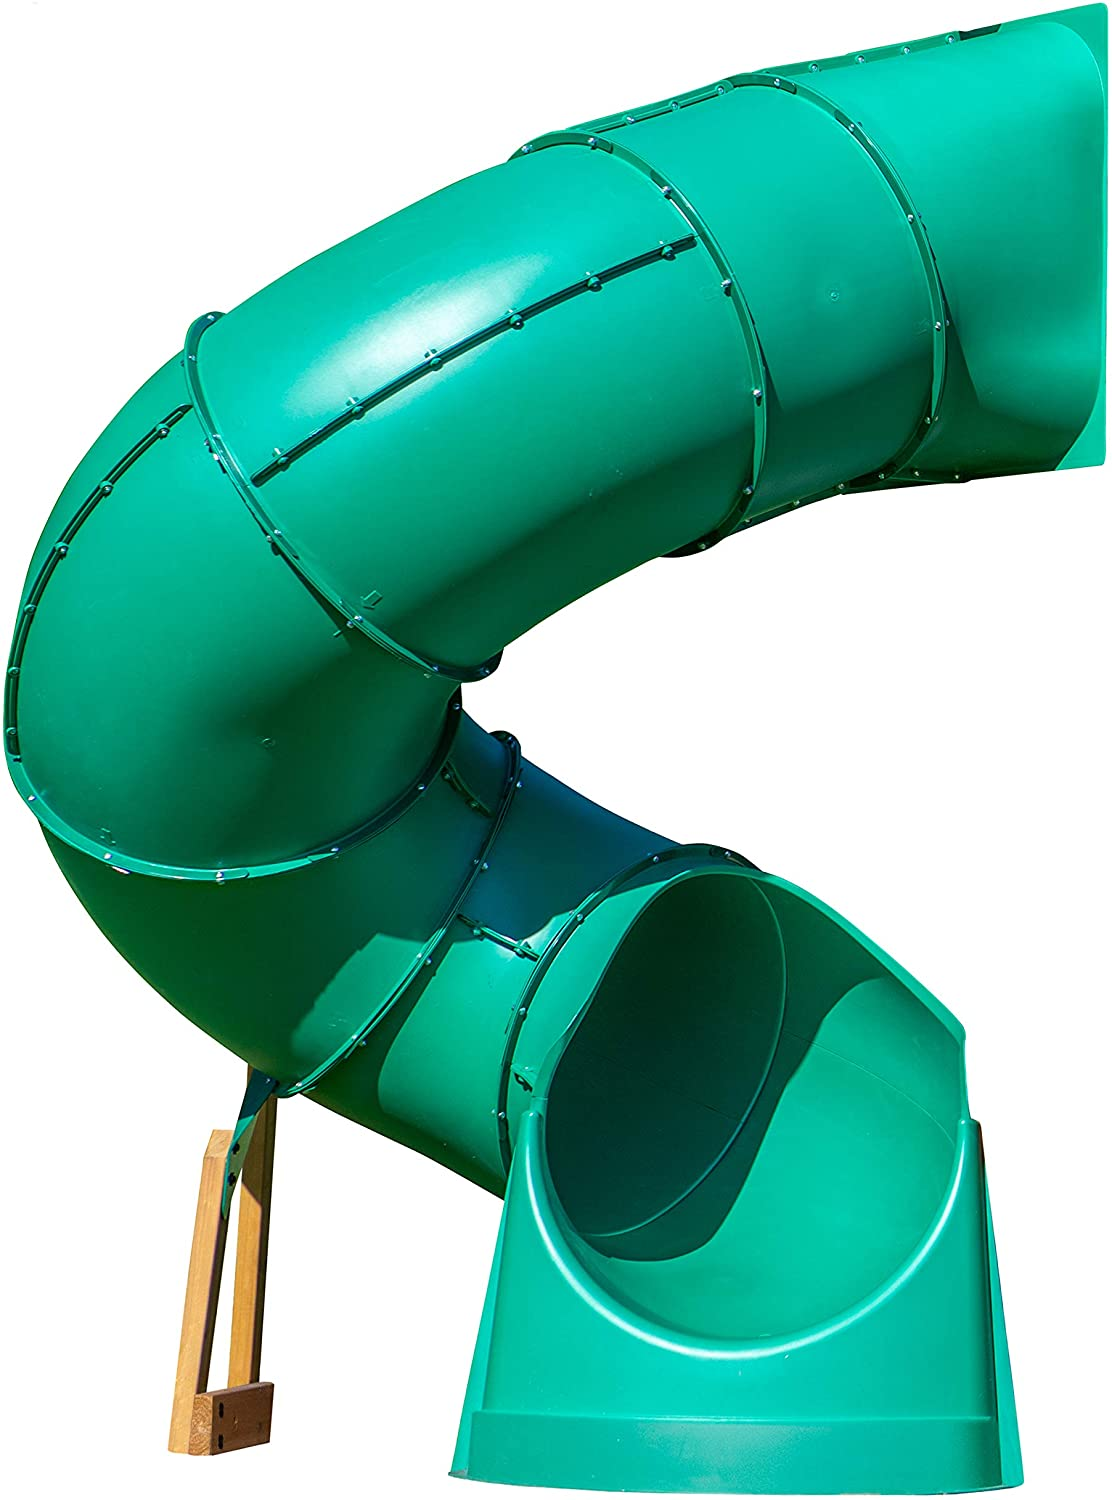 Backyard Discovery Tall Spiral Tube Slide - Left Exit, Green - Mounts to 5 Ft. Deck Height